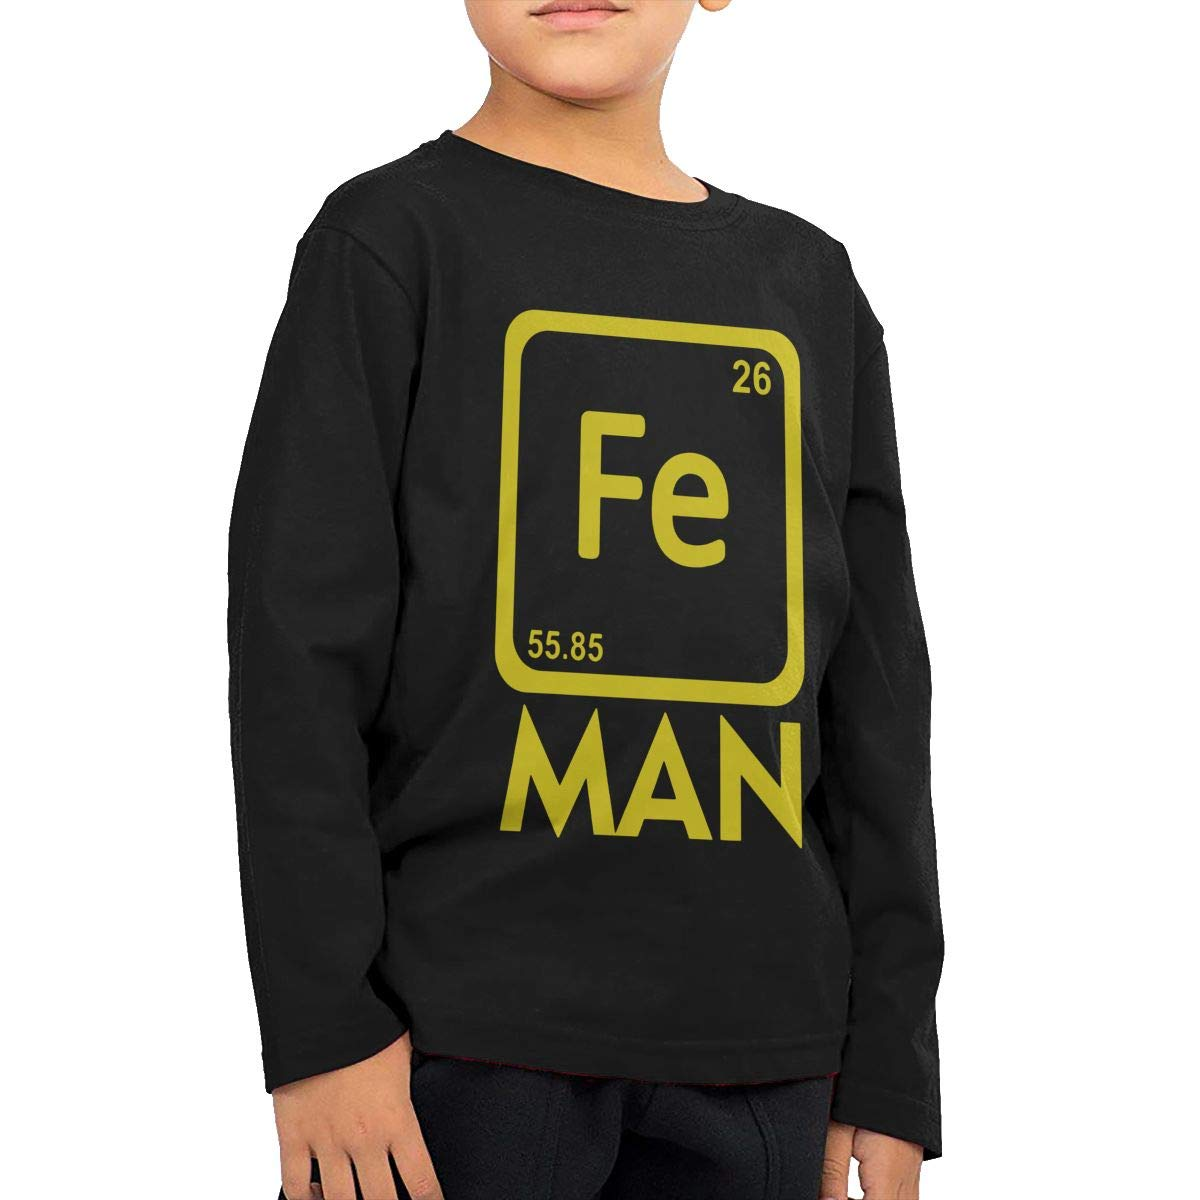 SKYAKLJA Iron Science Fe Periodic Table Childrens Black Cotton Long Sleeve Round Neck Tee Shirt for Boy Or Girl